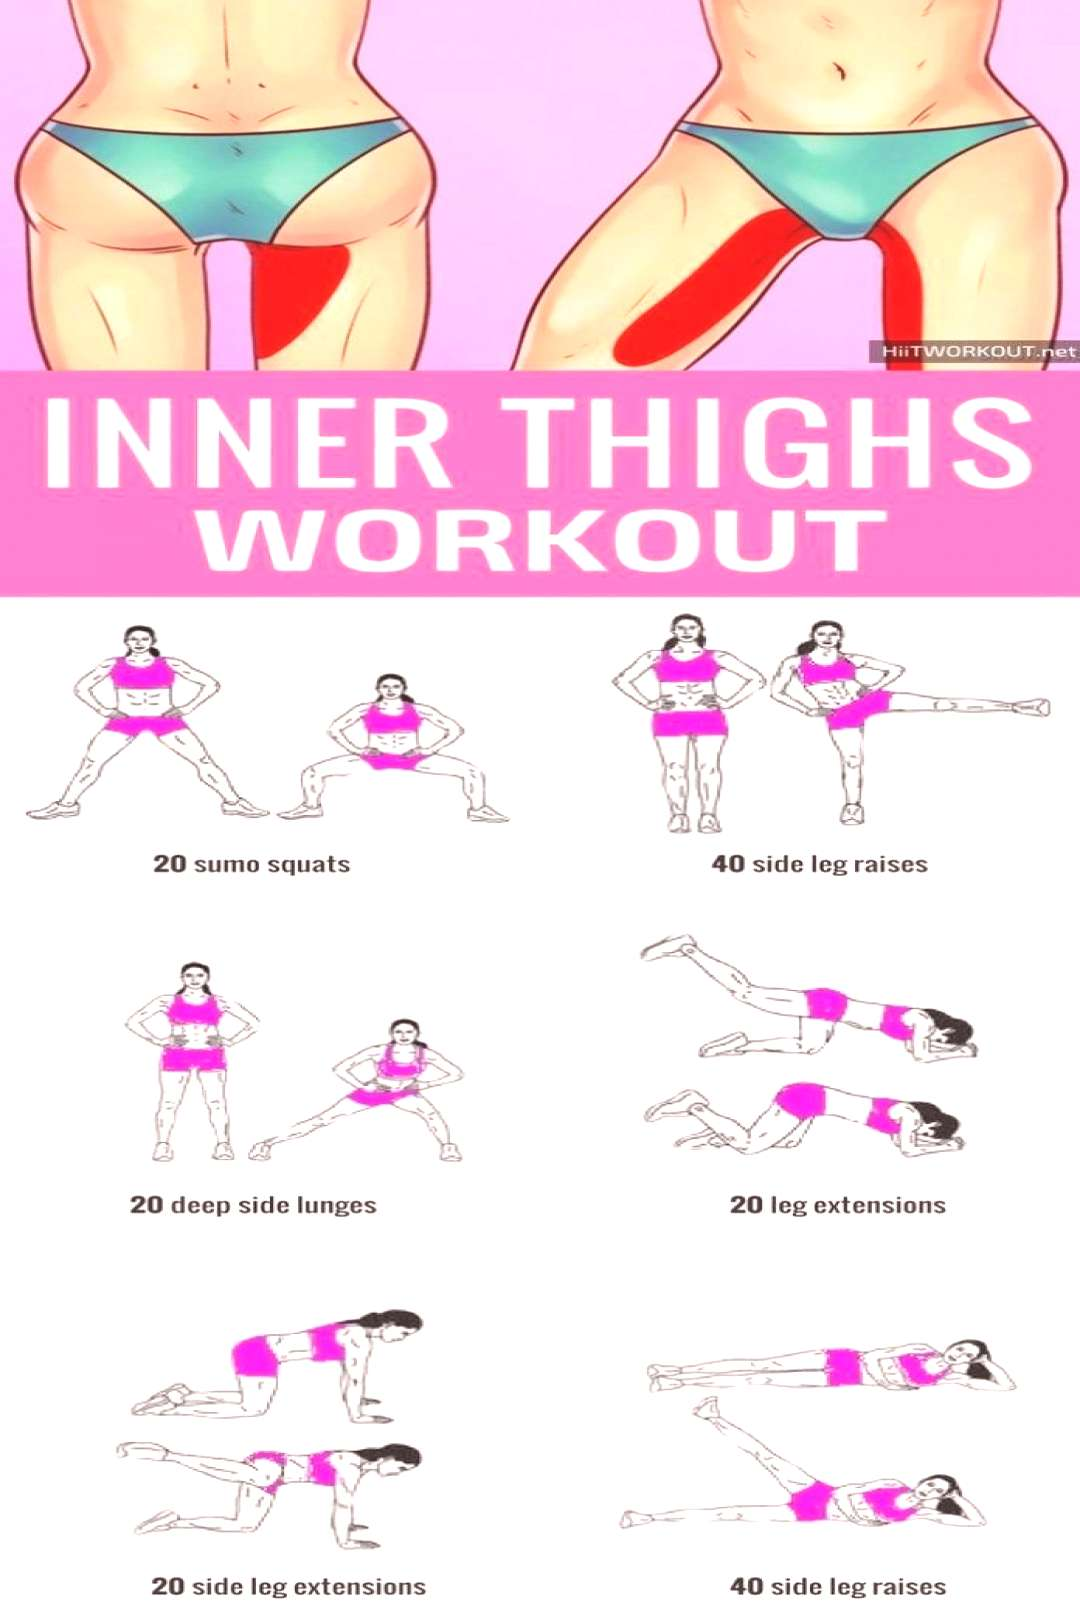 Diet 10 minutes of inner thigh training to try ... - Diet 10 minutes of inner thigh training to tr